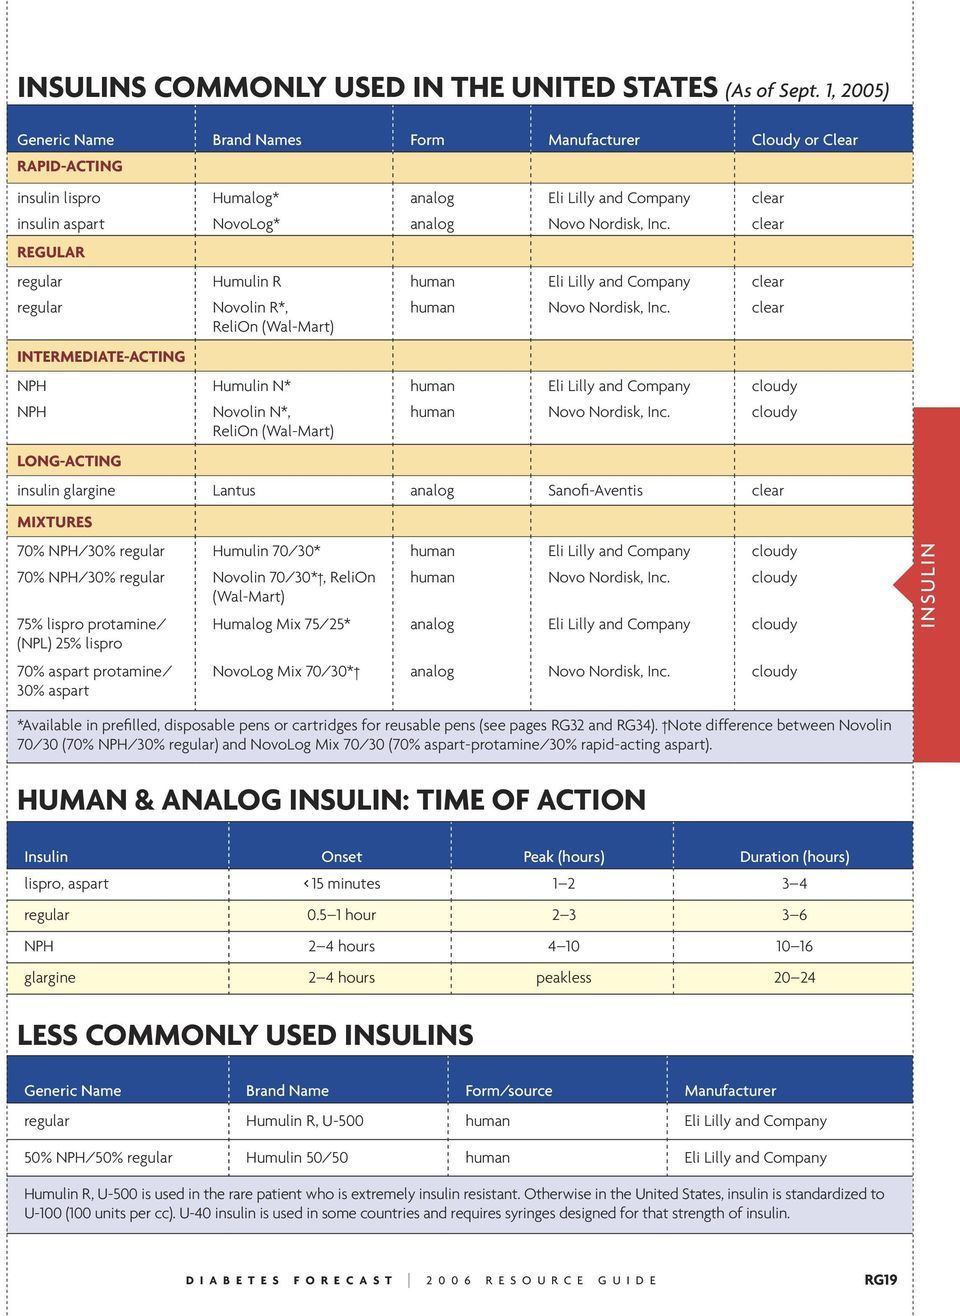 clear REGULAR regular Humulin R human Eli Lilly and Company clear regular INTERMEDIATE-ACTING Novolin R*, ReliOn (Wal-Mart) human Novo Nordisk, Inc.